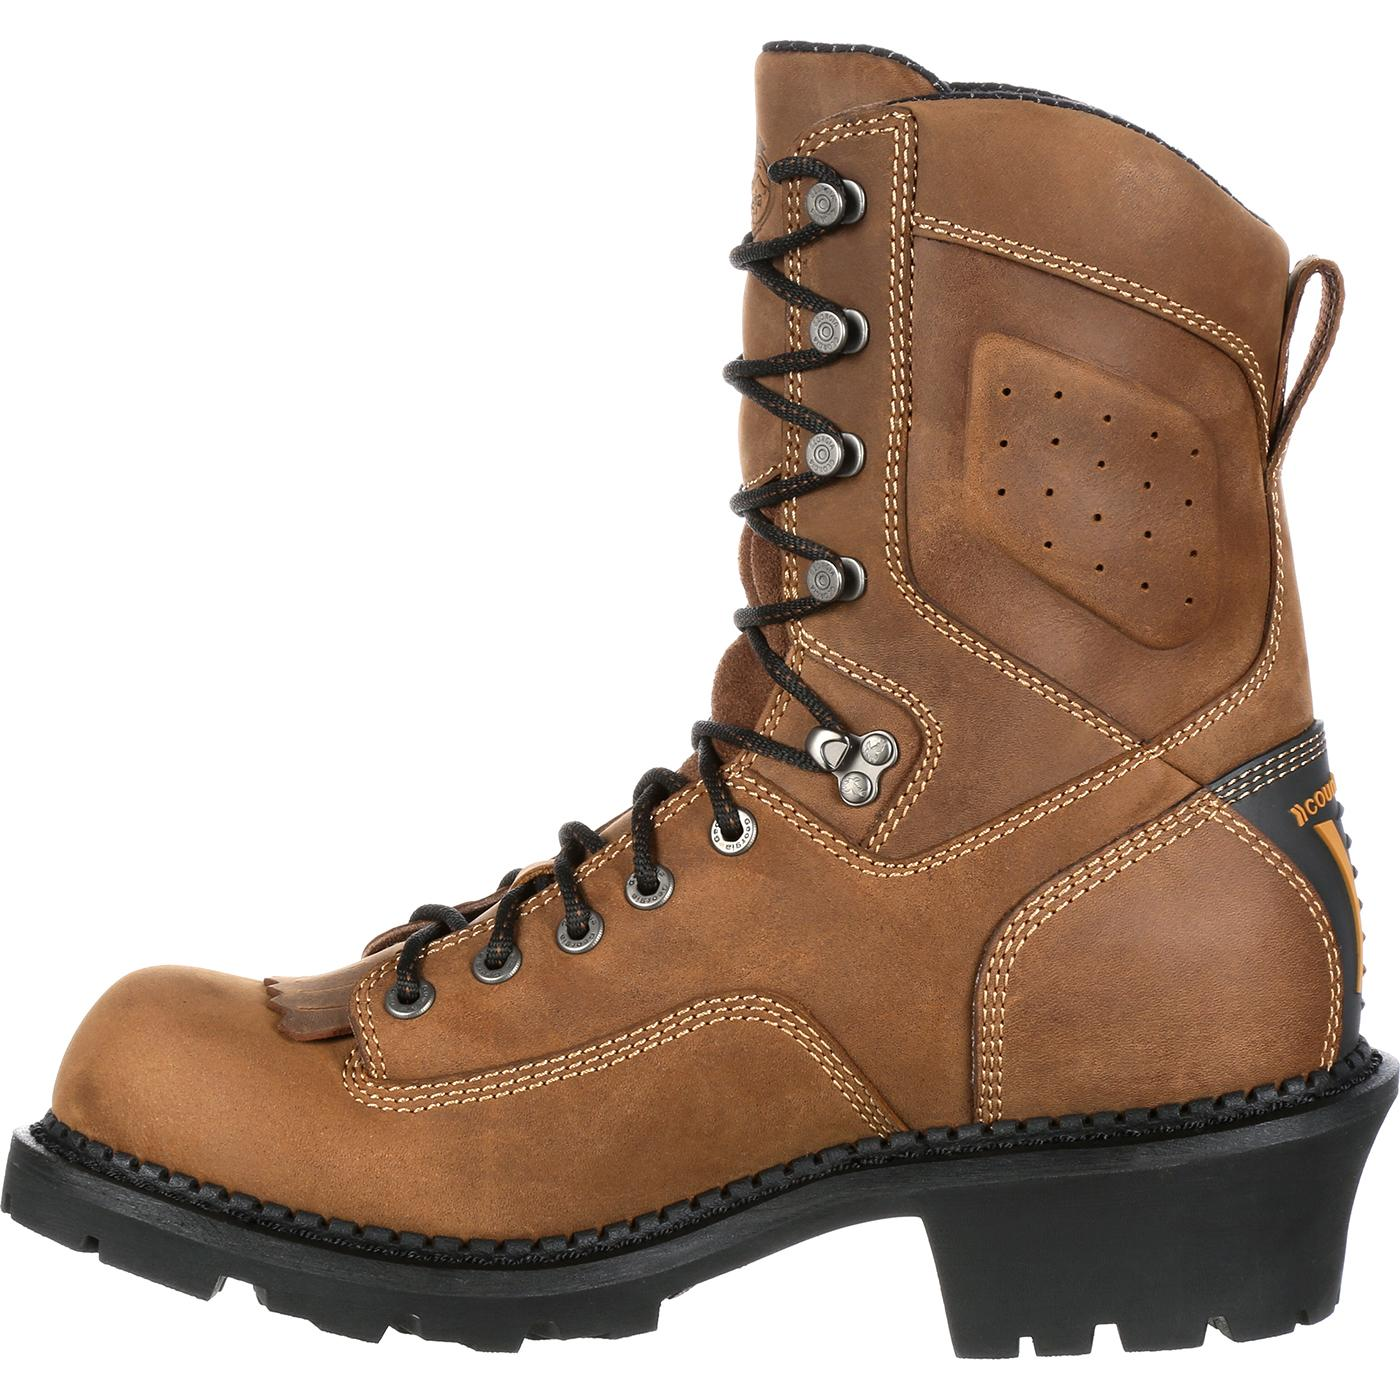 Georgia Boot Comfort Core Logger Waterproof Work Boots